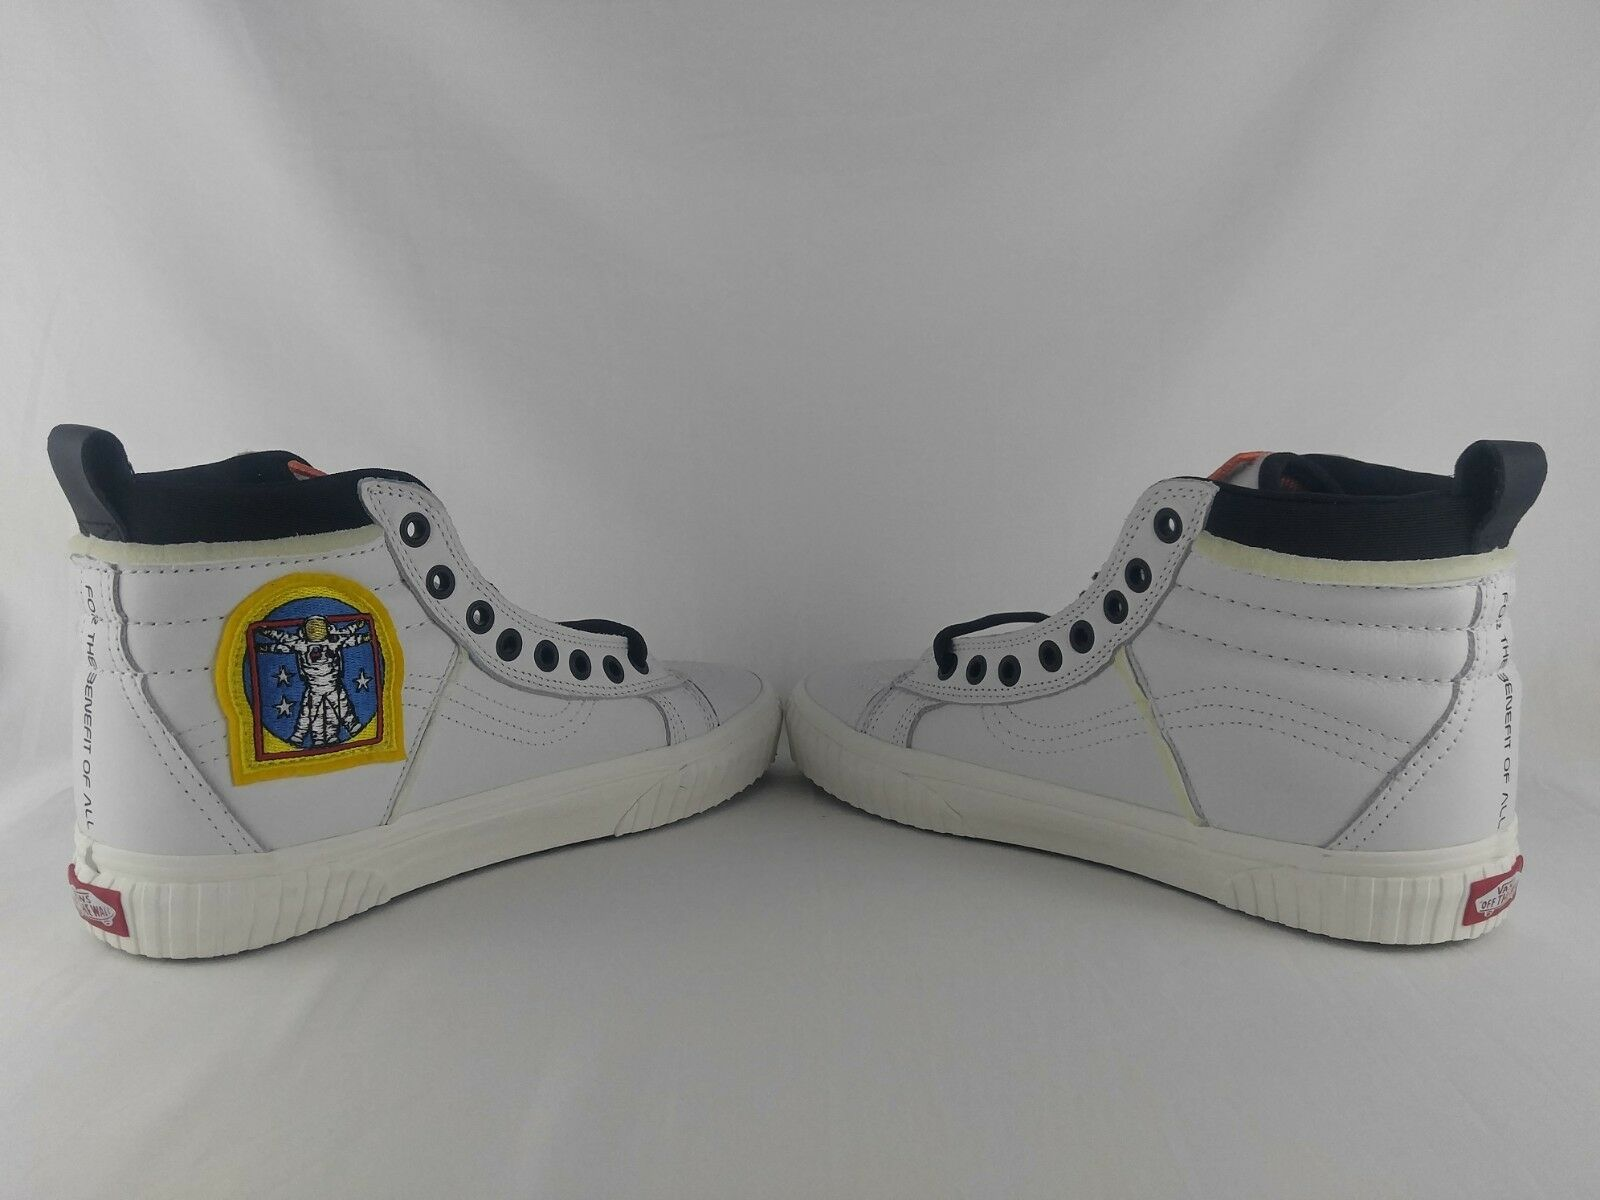 cc7bbc48ab9 Vans X NASA High Size 5 Space Voyager Sk8-Hi 46 DX White Shoes Confirmed  Order  fashion  clothing  shoes  accessories  mensshoes  athleticshoes (ebay  link)